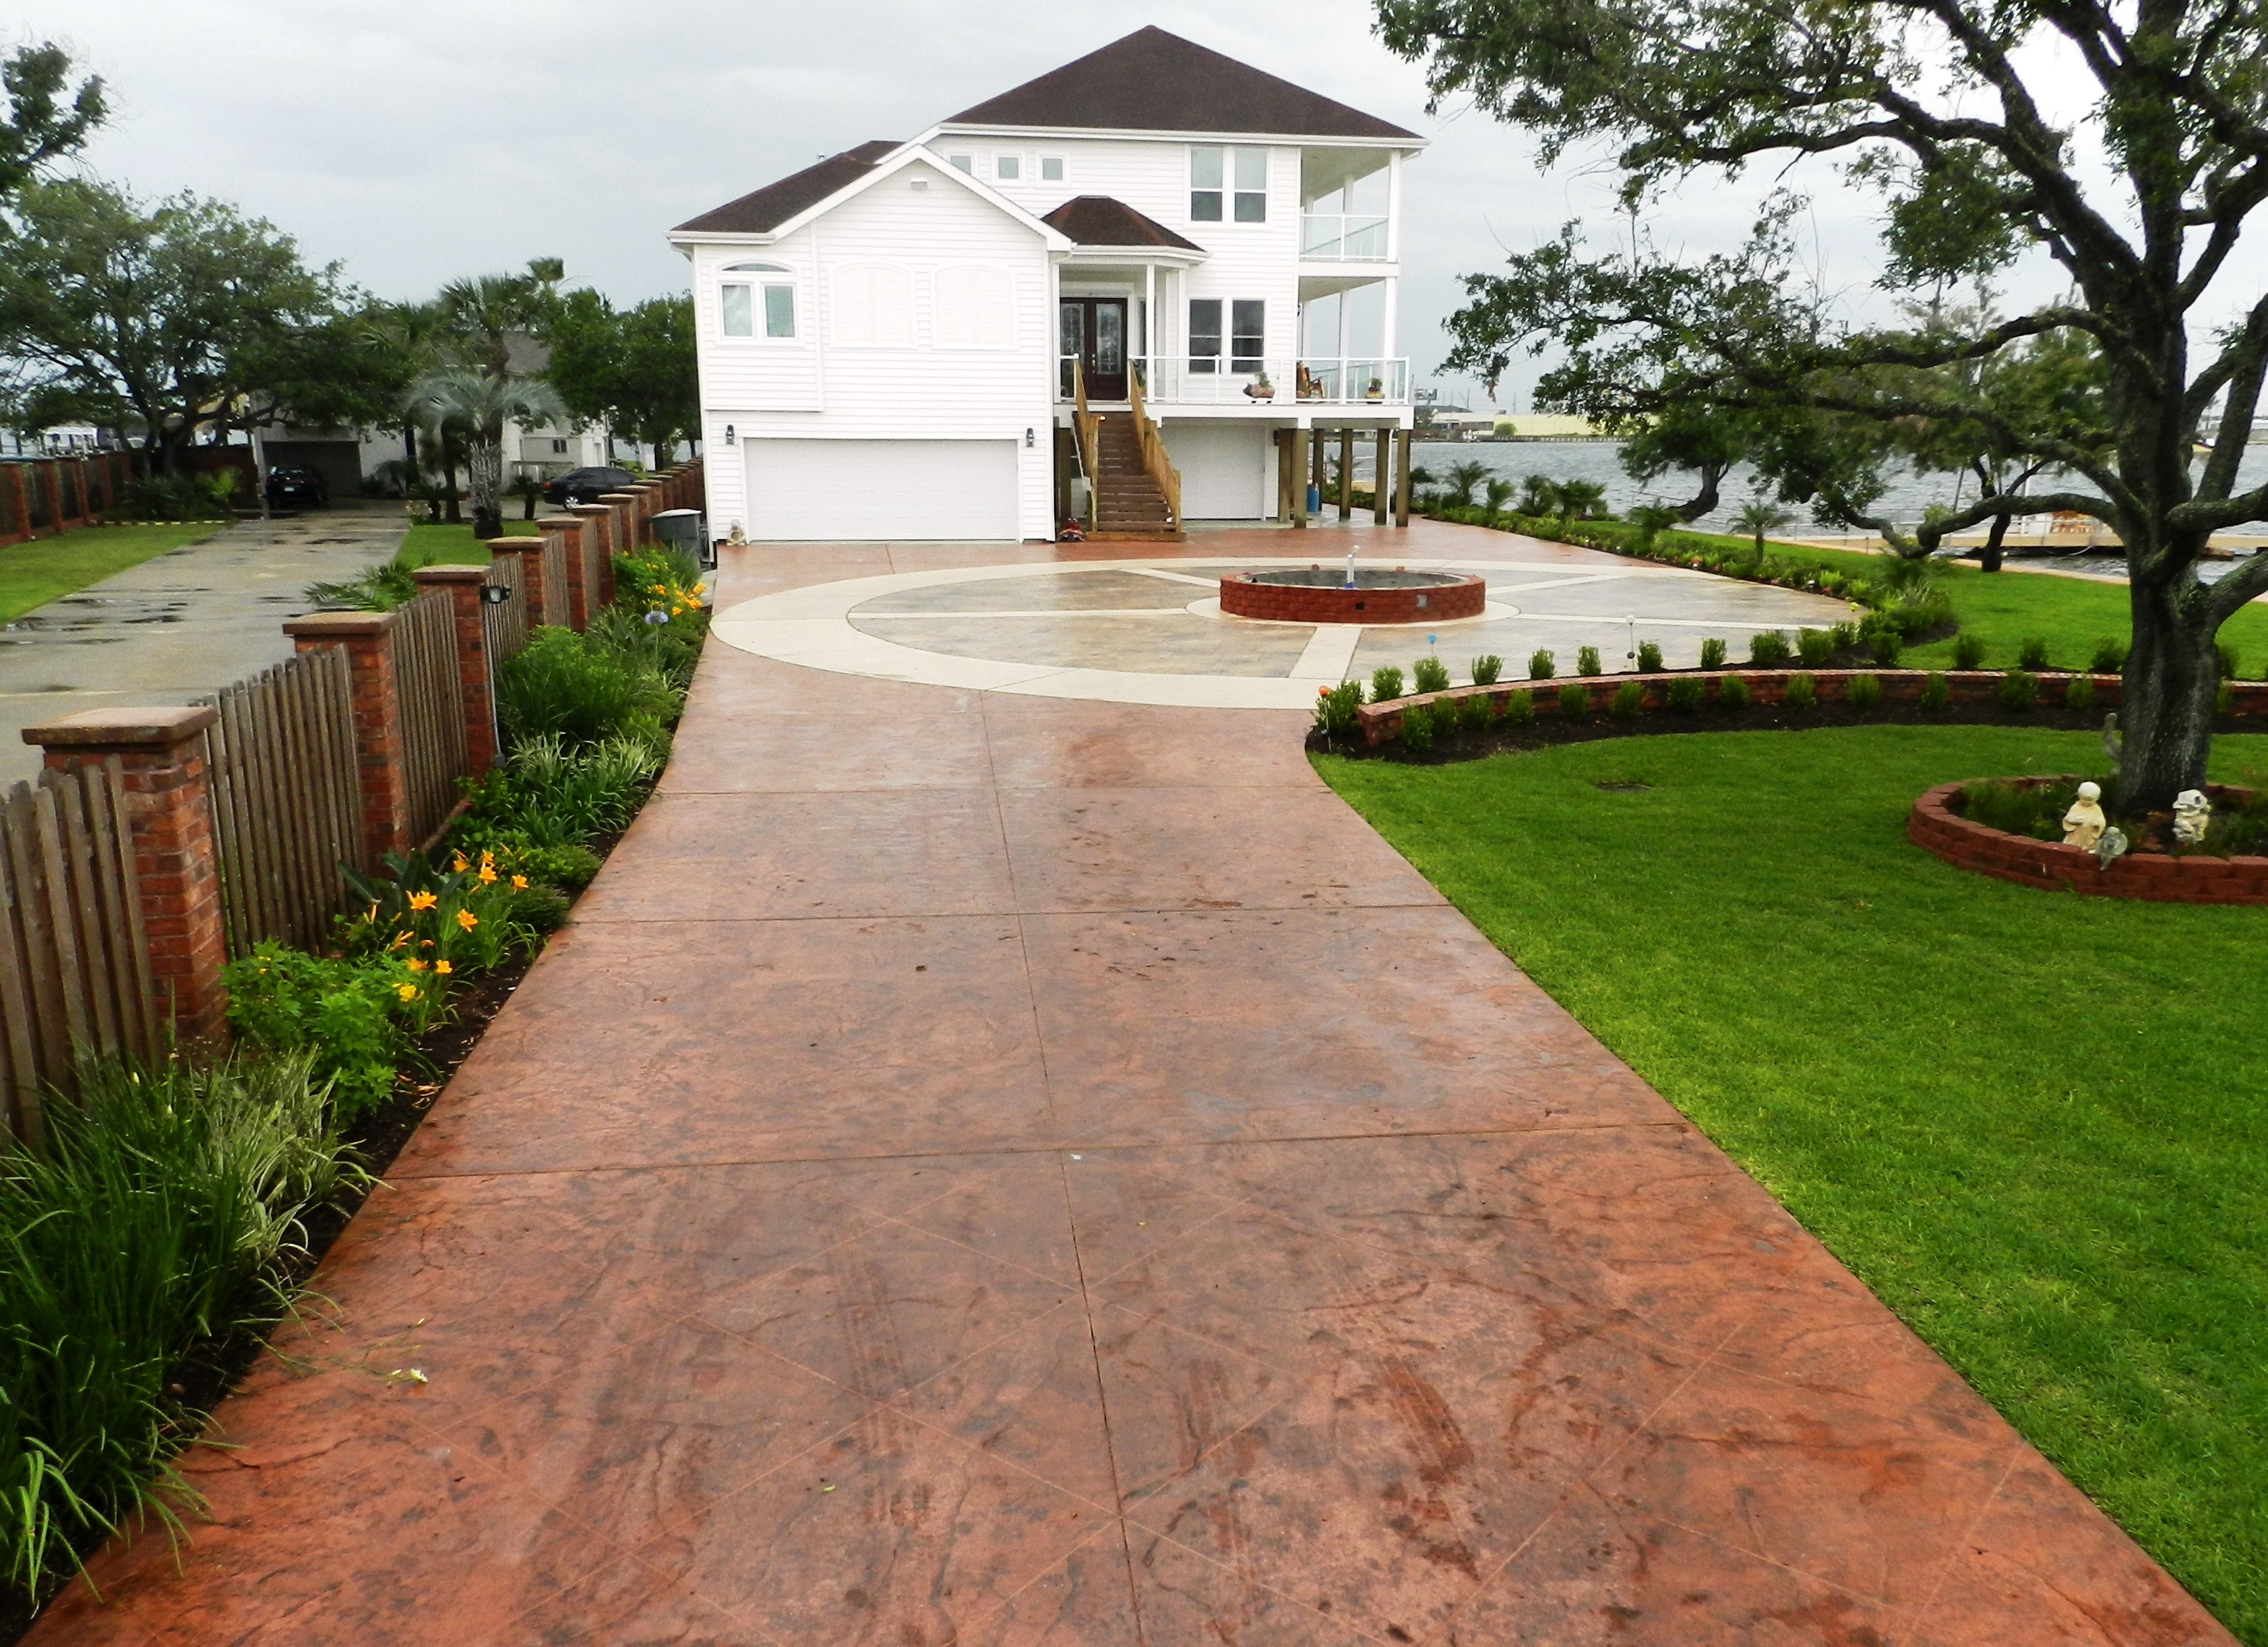 driveway patio ideas best 25 paver designs ideas on pinterest view in gallery stamped concrete designs